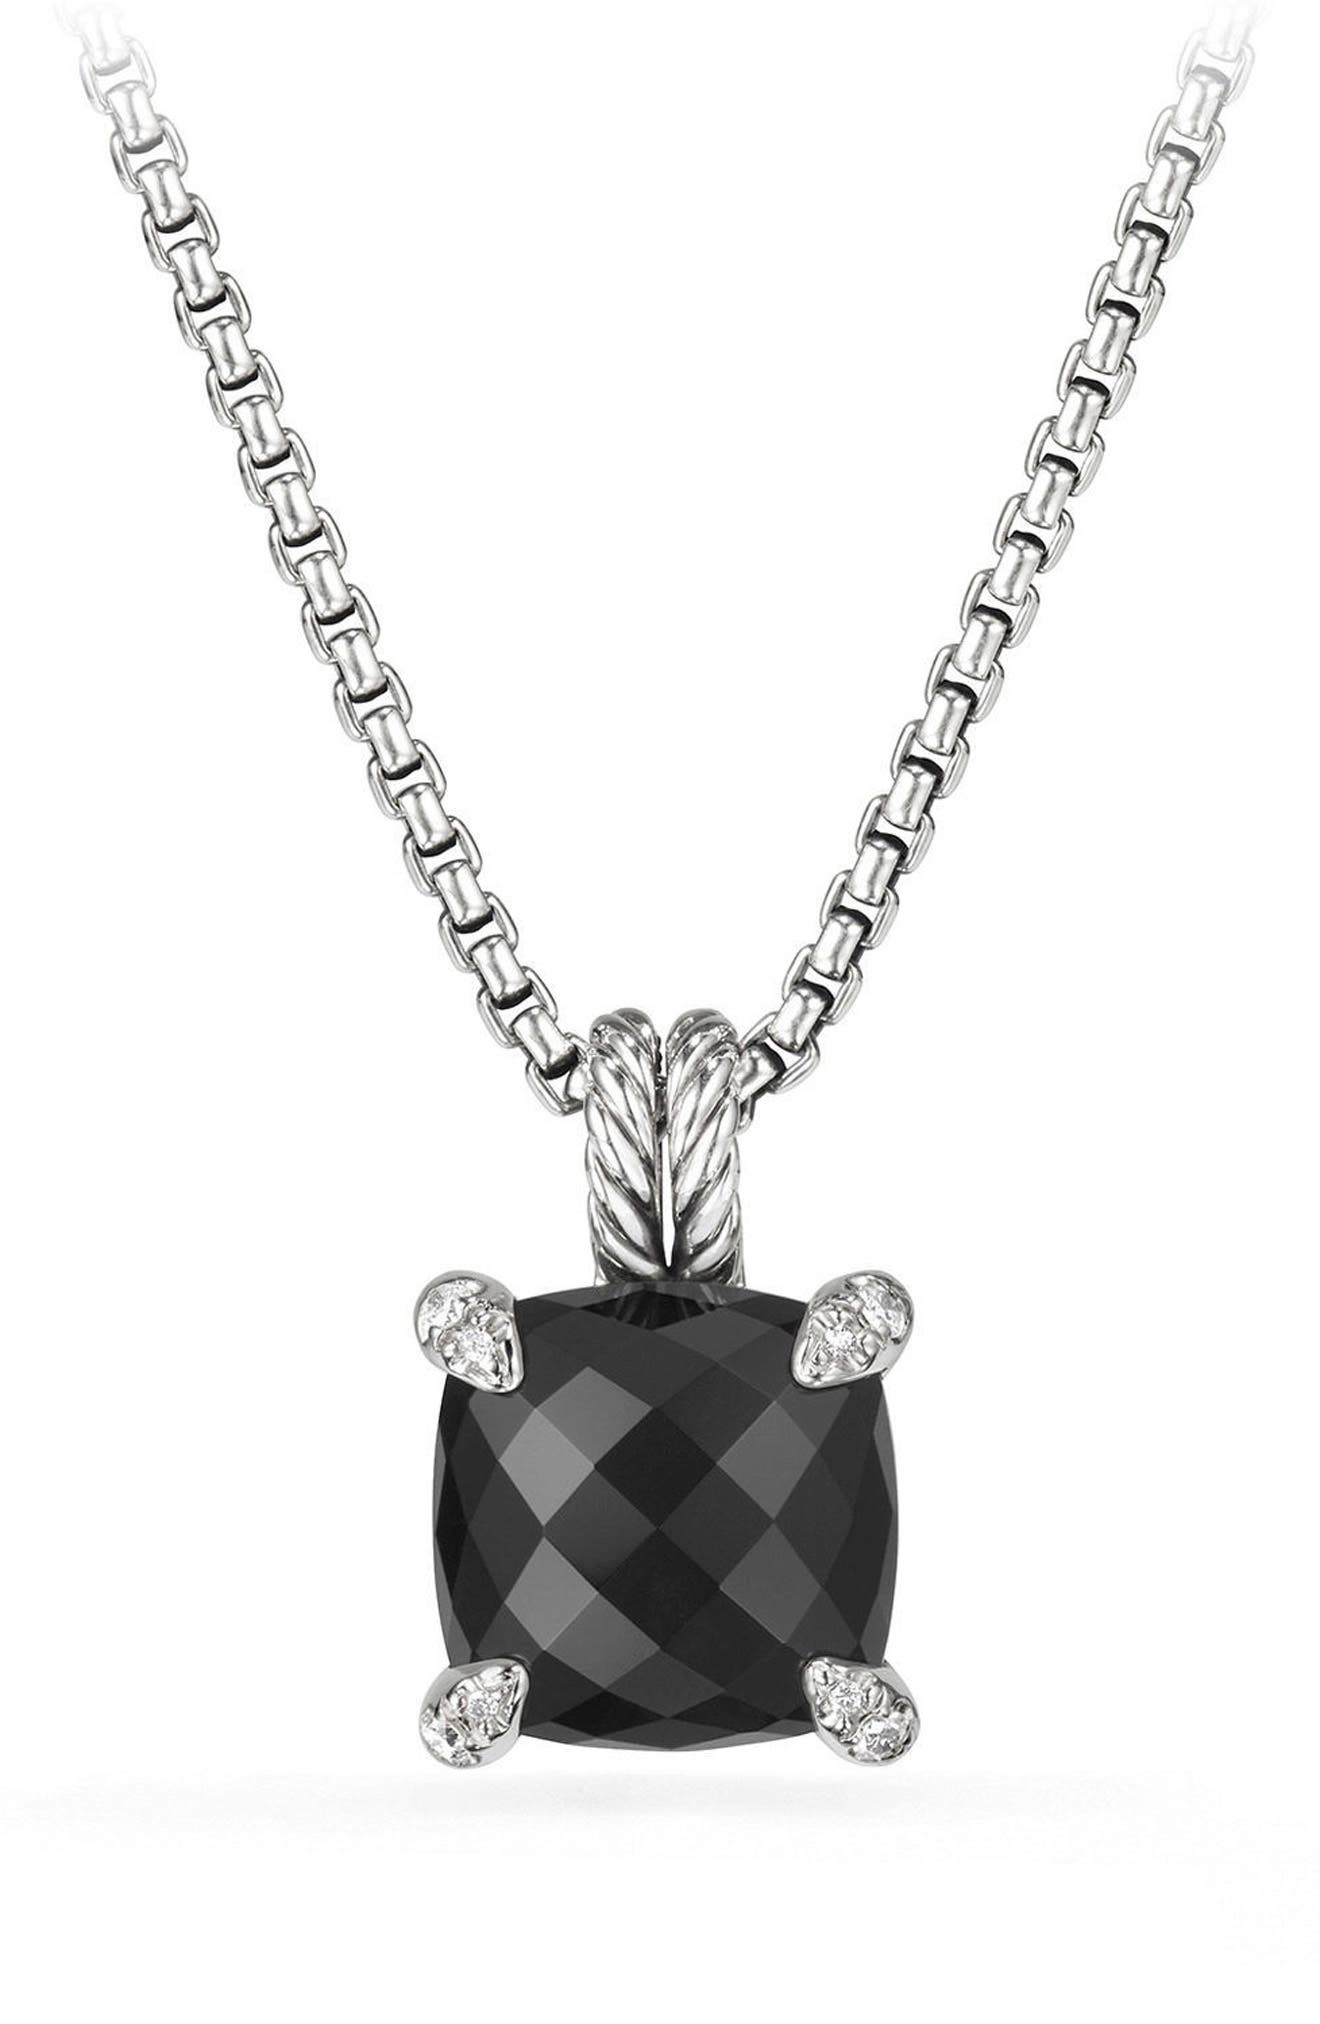 Châtelaine Pendant Necklace with Black Onyx and Diamonds,                             Main thumbnail 1, color,                             Black Onyx